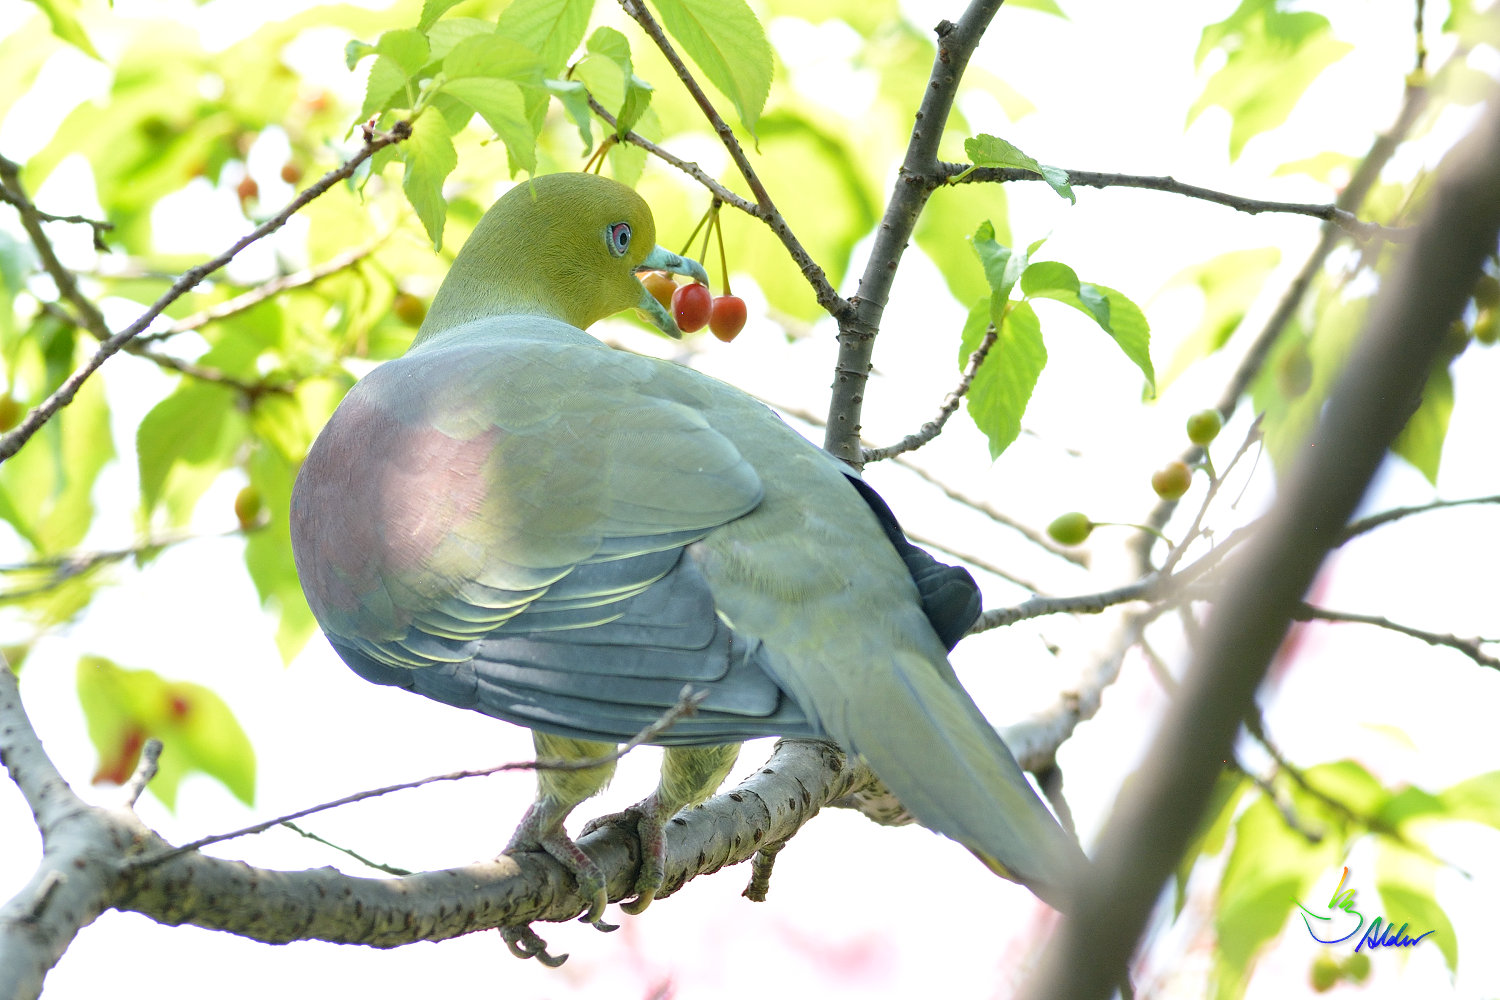 White-bellied_Green_Pigeon_5601